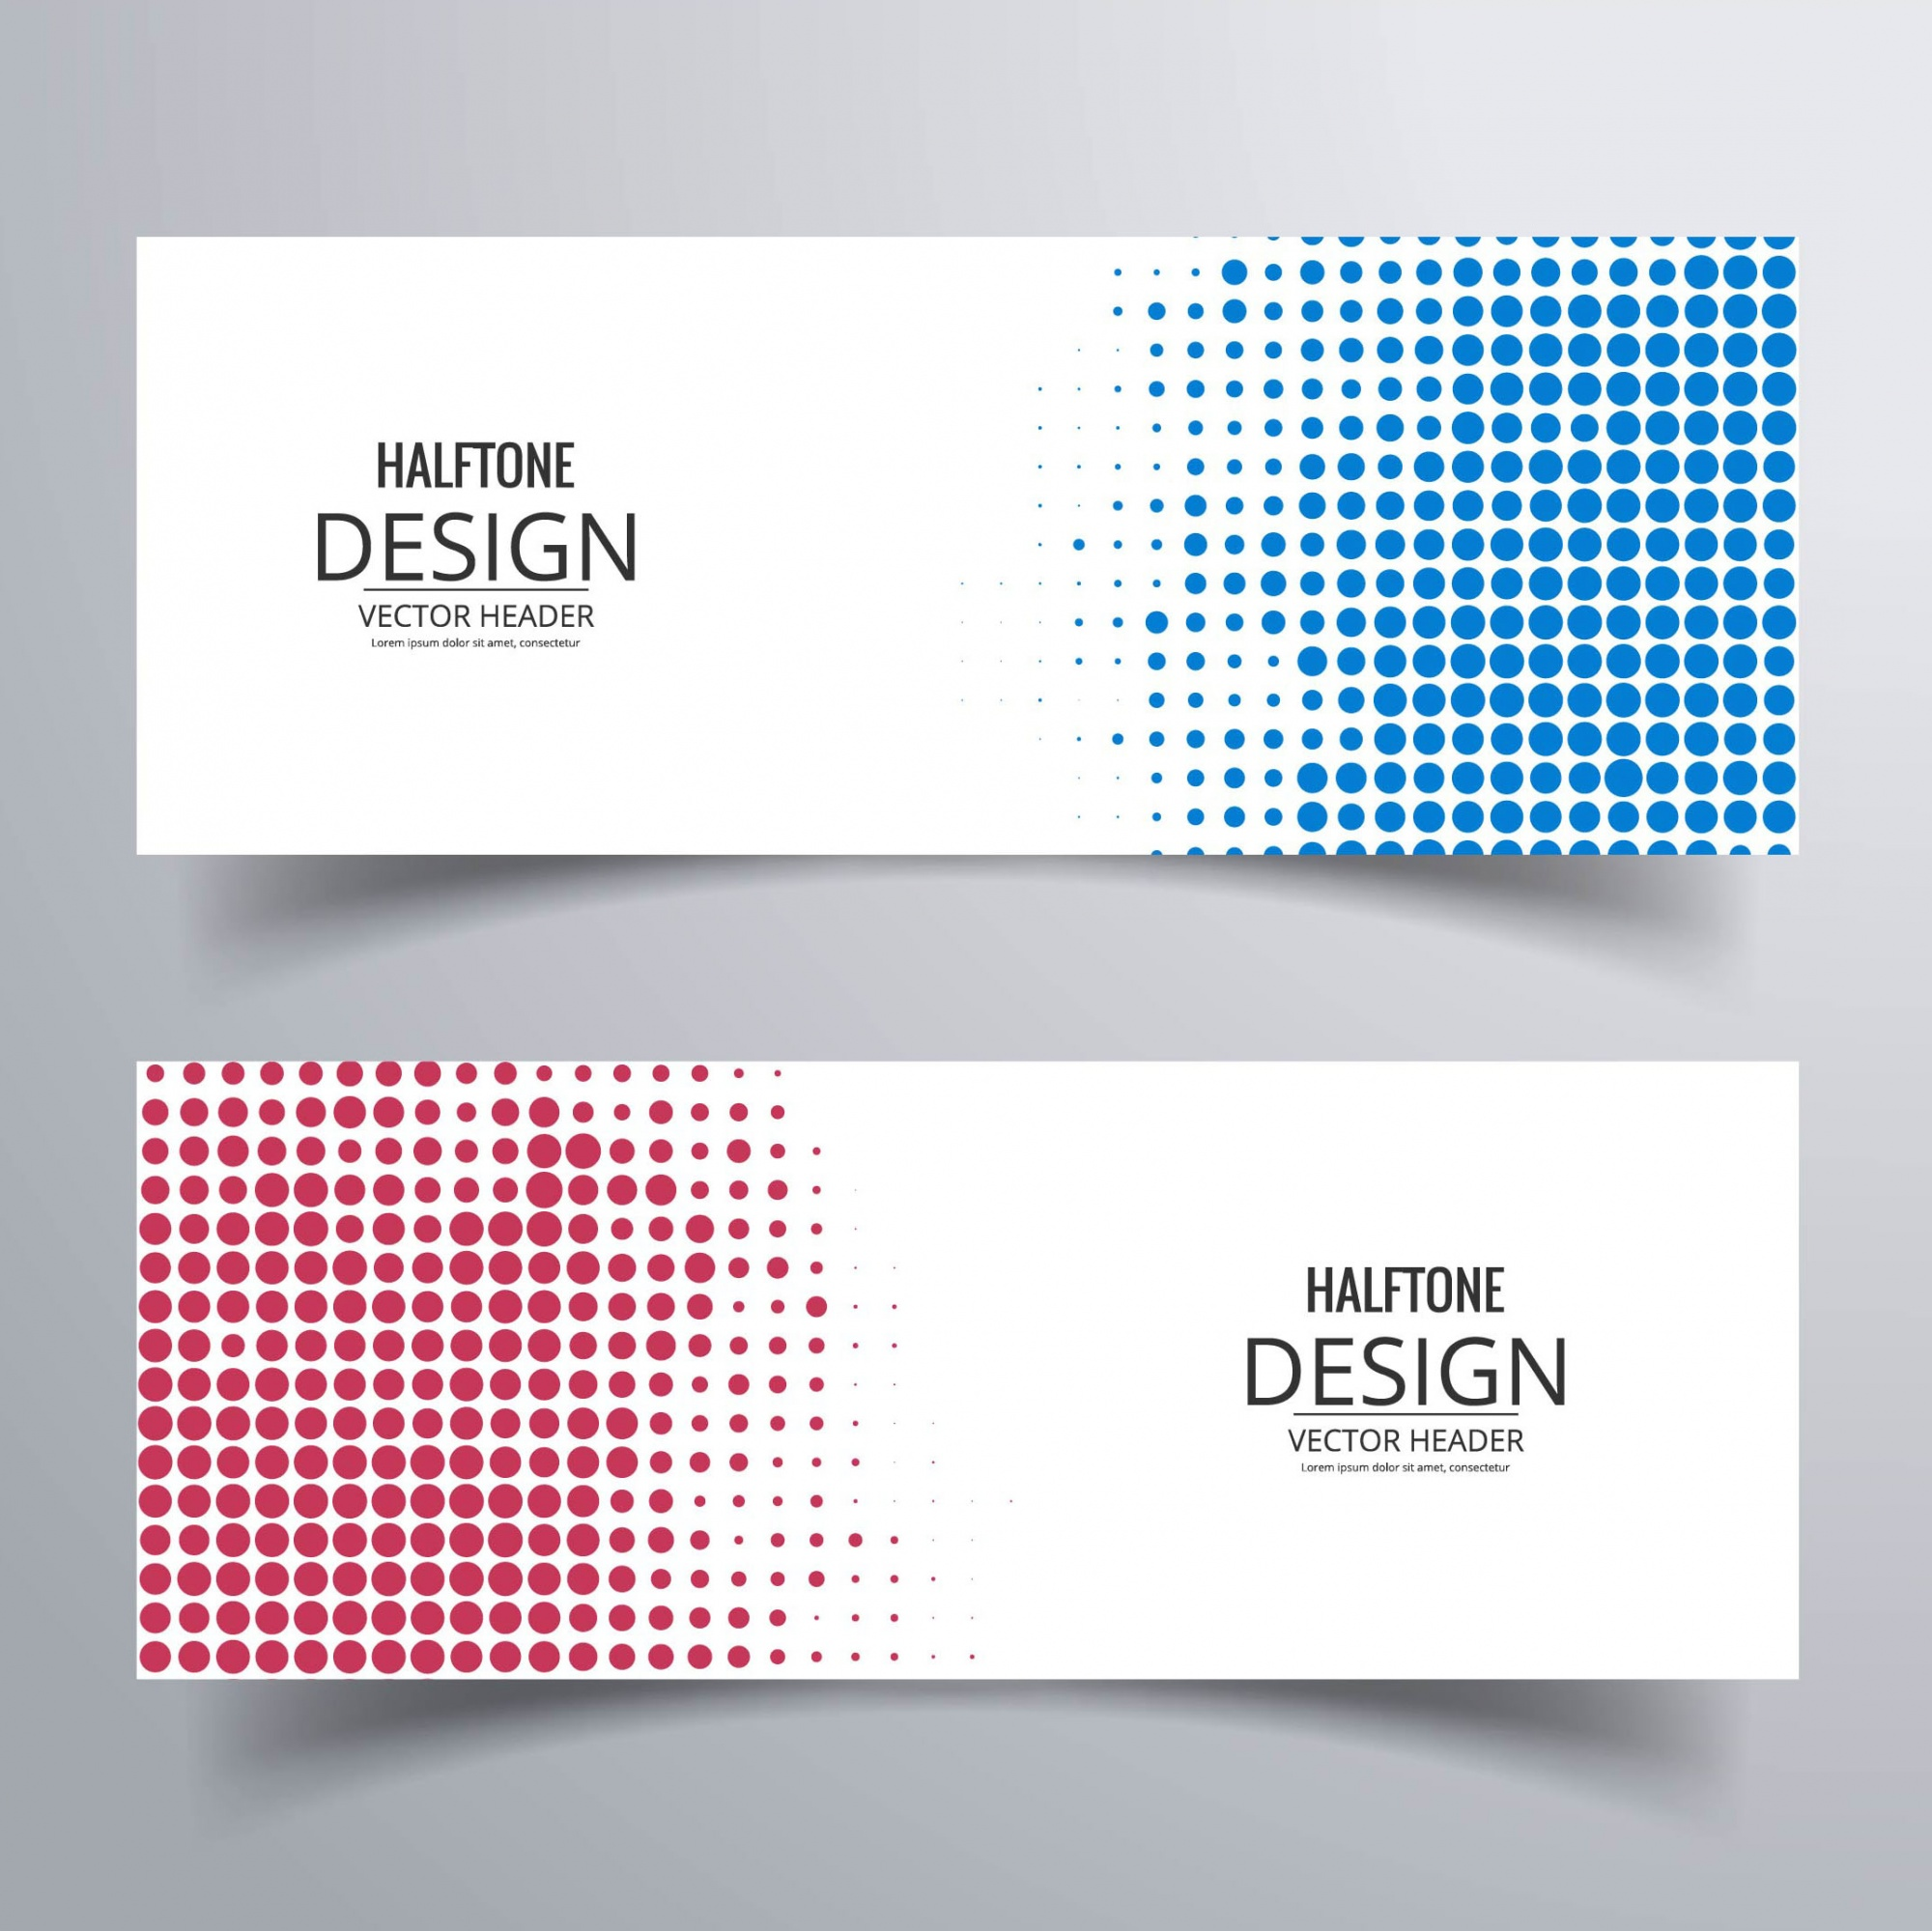 Two blue and red banners with halftone dots